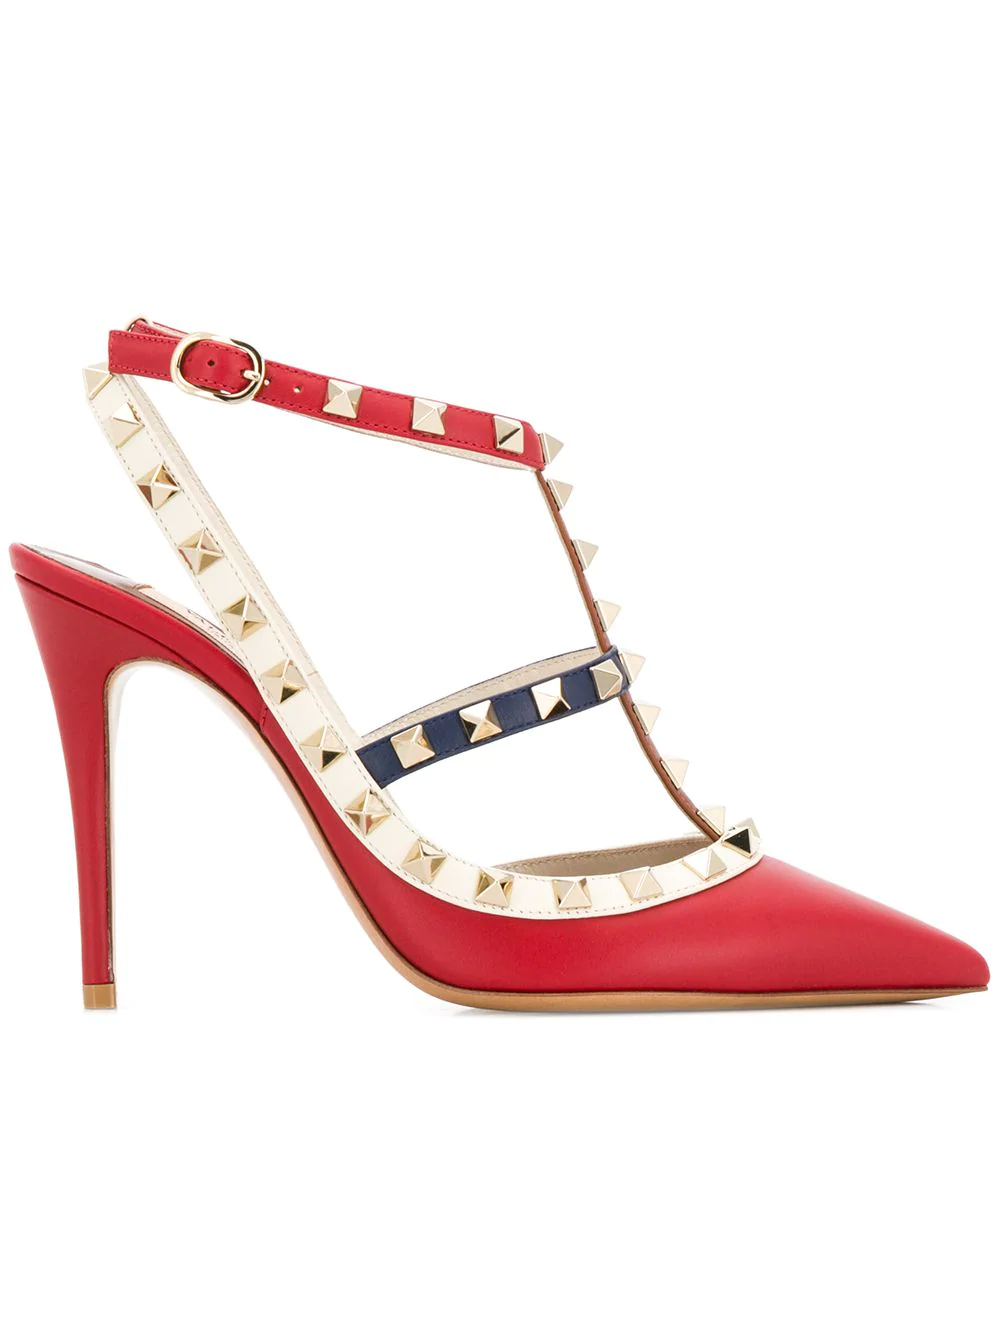 8d8c21d1916 Valentino Multicolor Rockstud Caged Pump 100Mm In Red